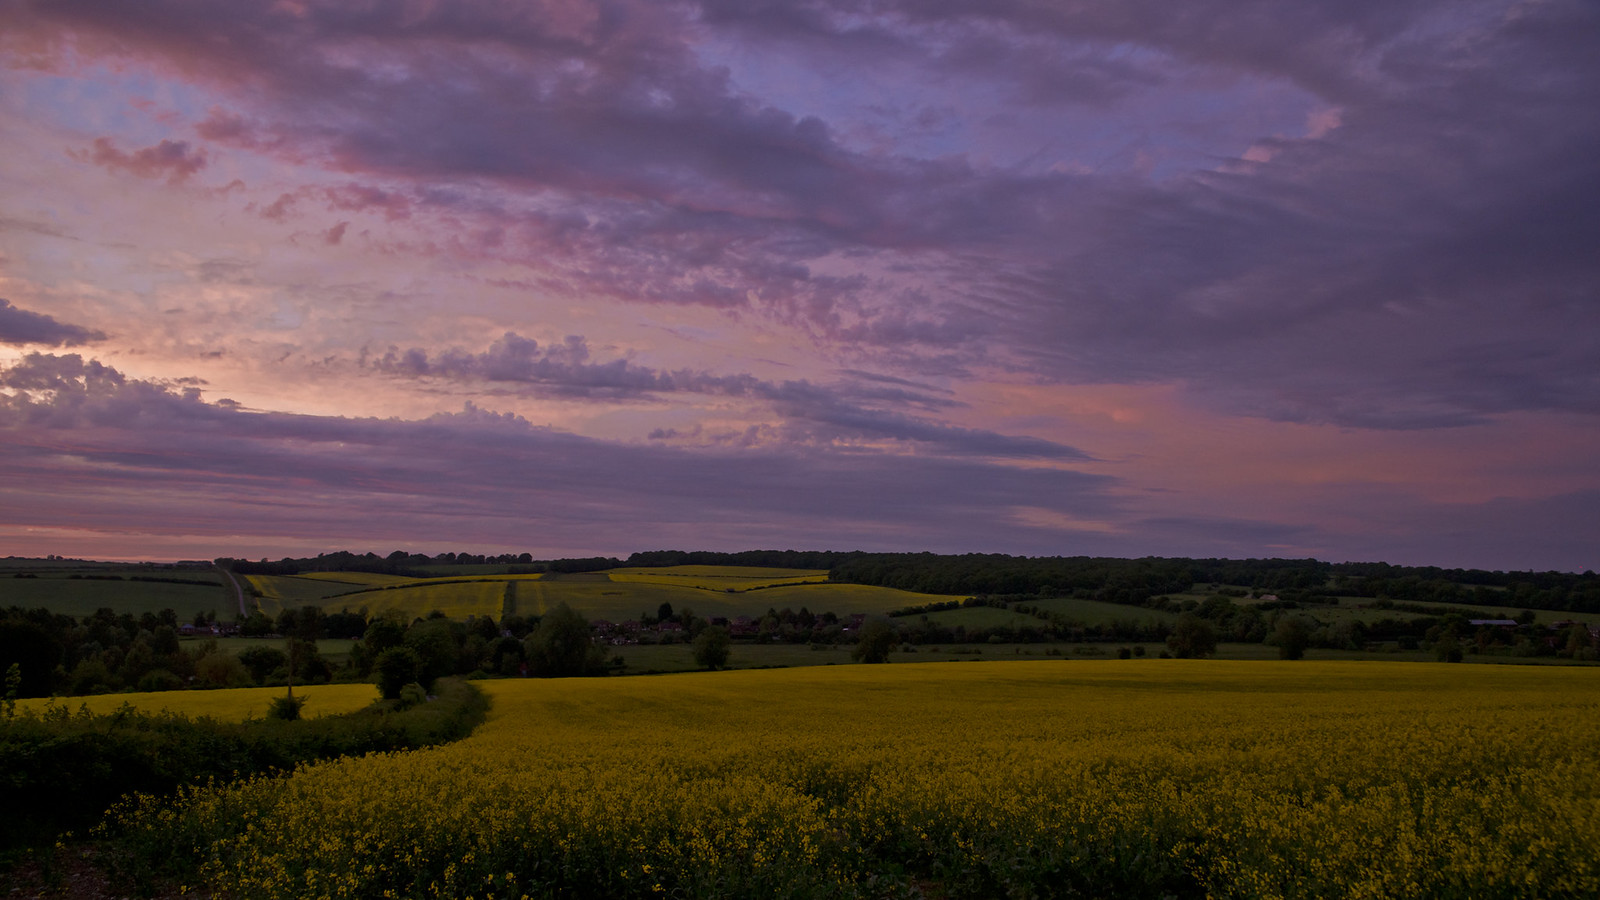 Ragged Pinks and Purples Above a Patchwork of Yellows...